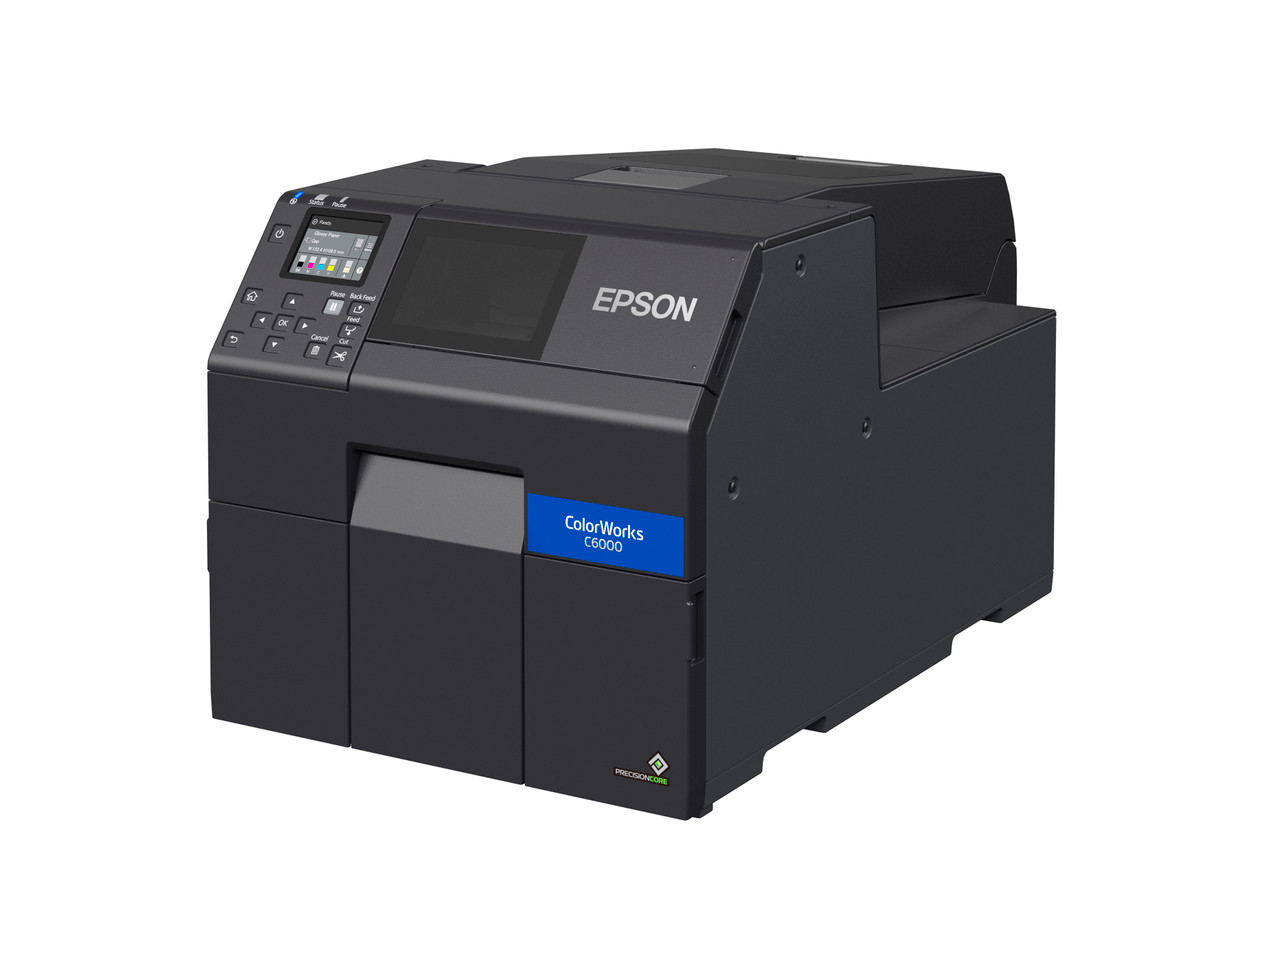 Epson ColorWorks C6000A 4 inch color label printer - Autocutter (C31CH76101)